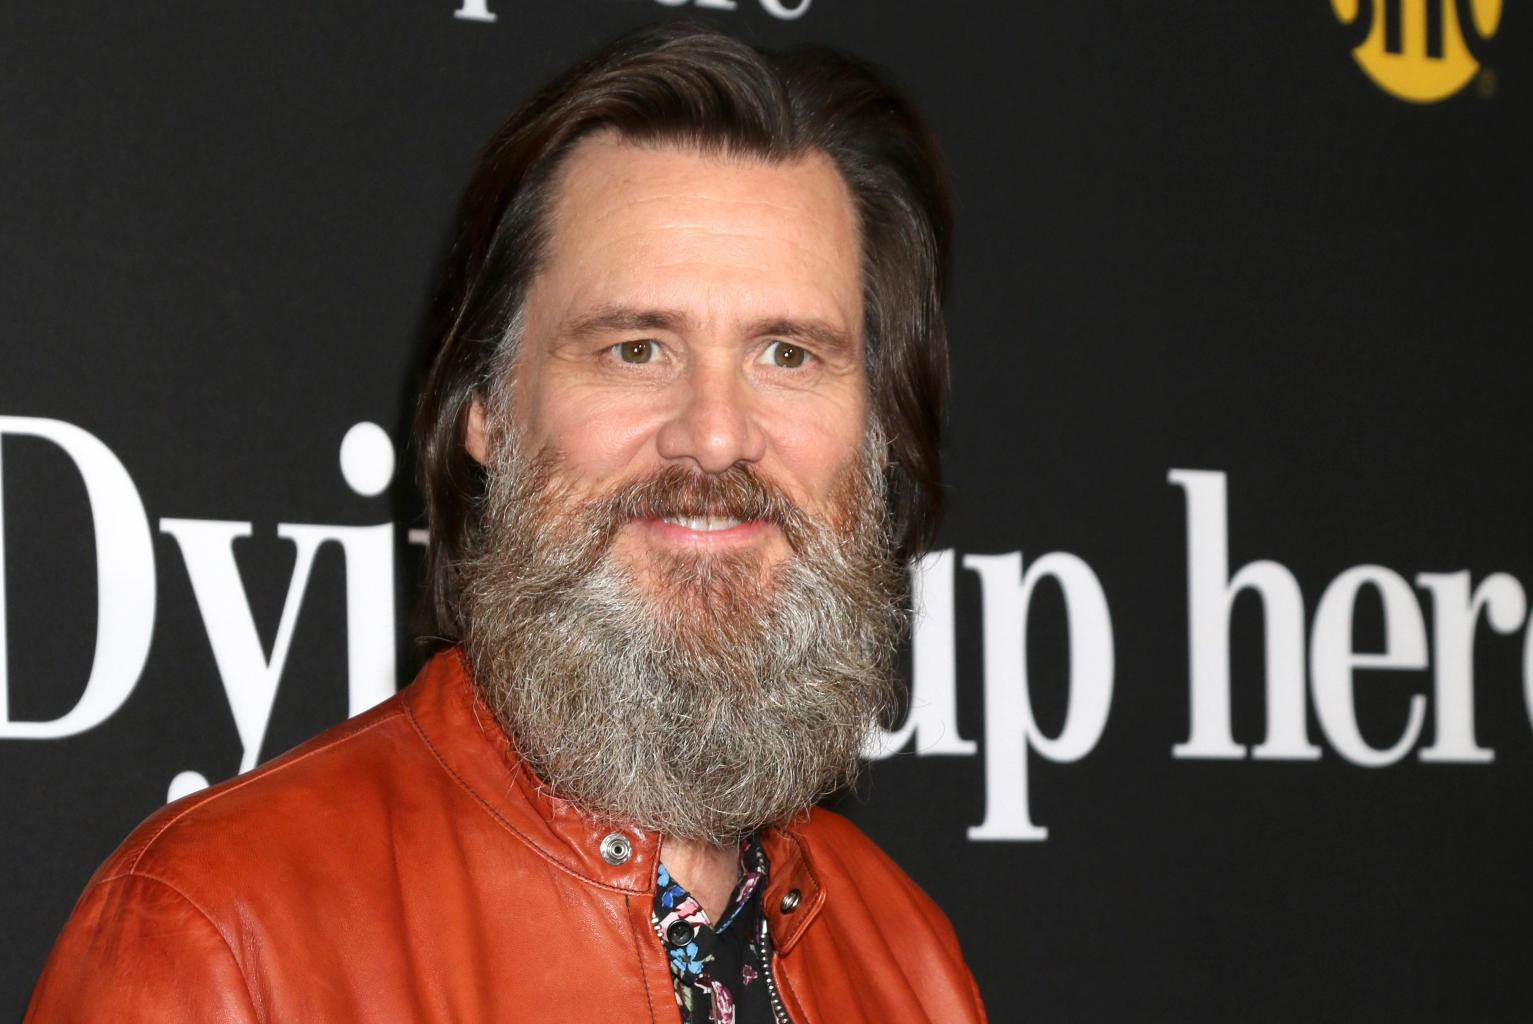 Jim Carrey To Give Deposition In Ex-Girlfriend's Wrongful Death Lawsuit